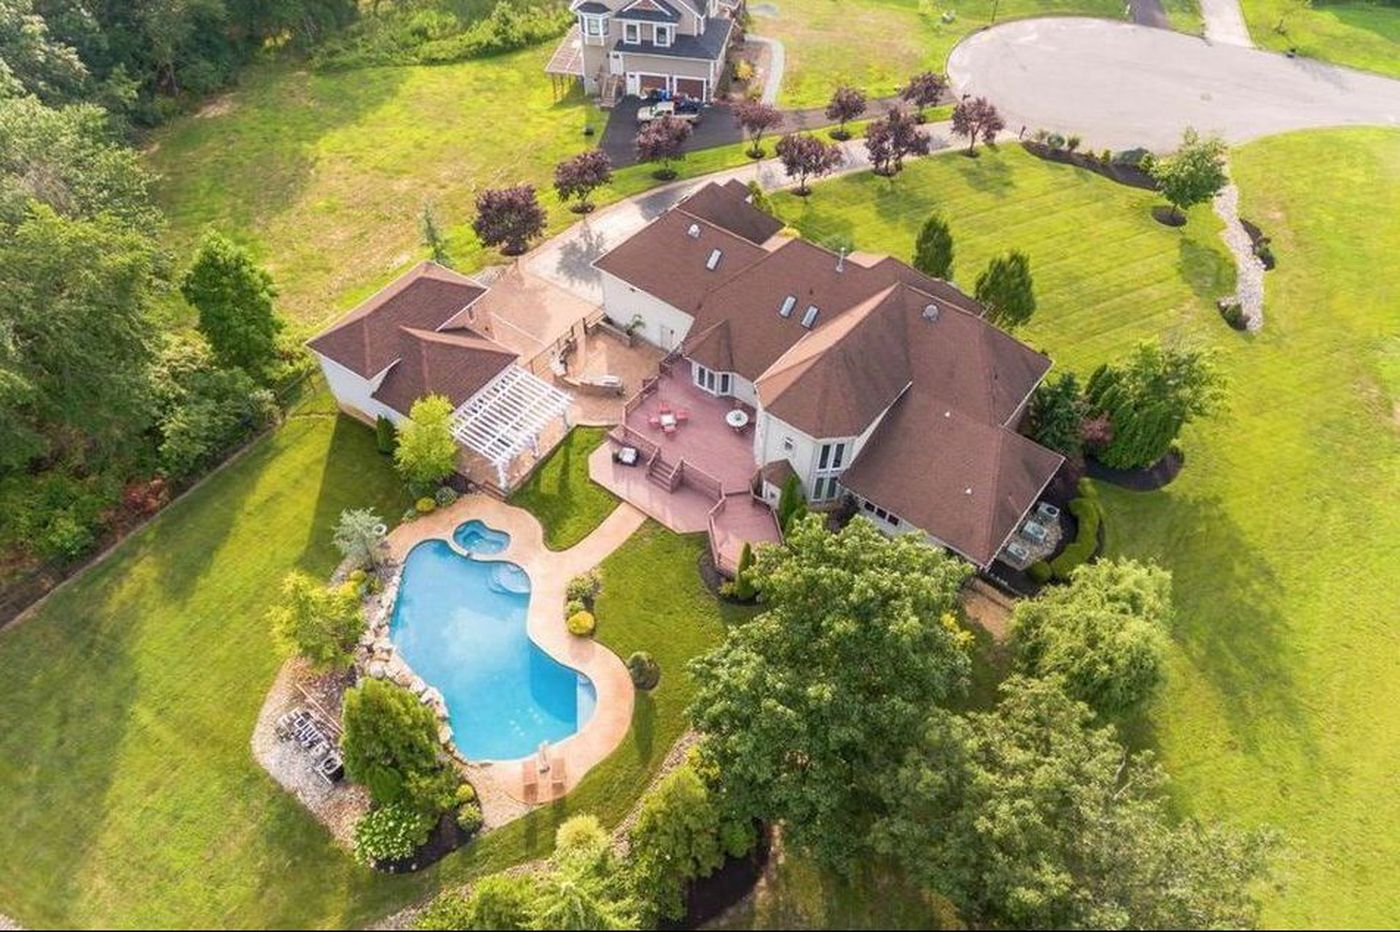 Jimmy Rollins' South Jersey home can be yours for $799,000